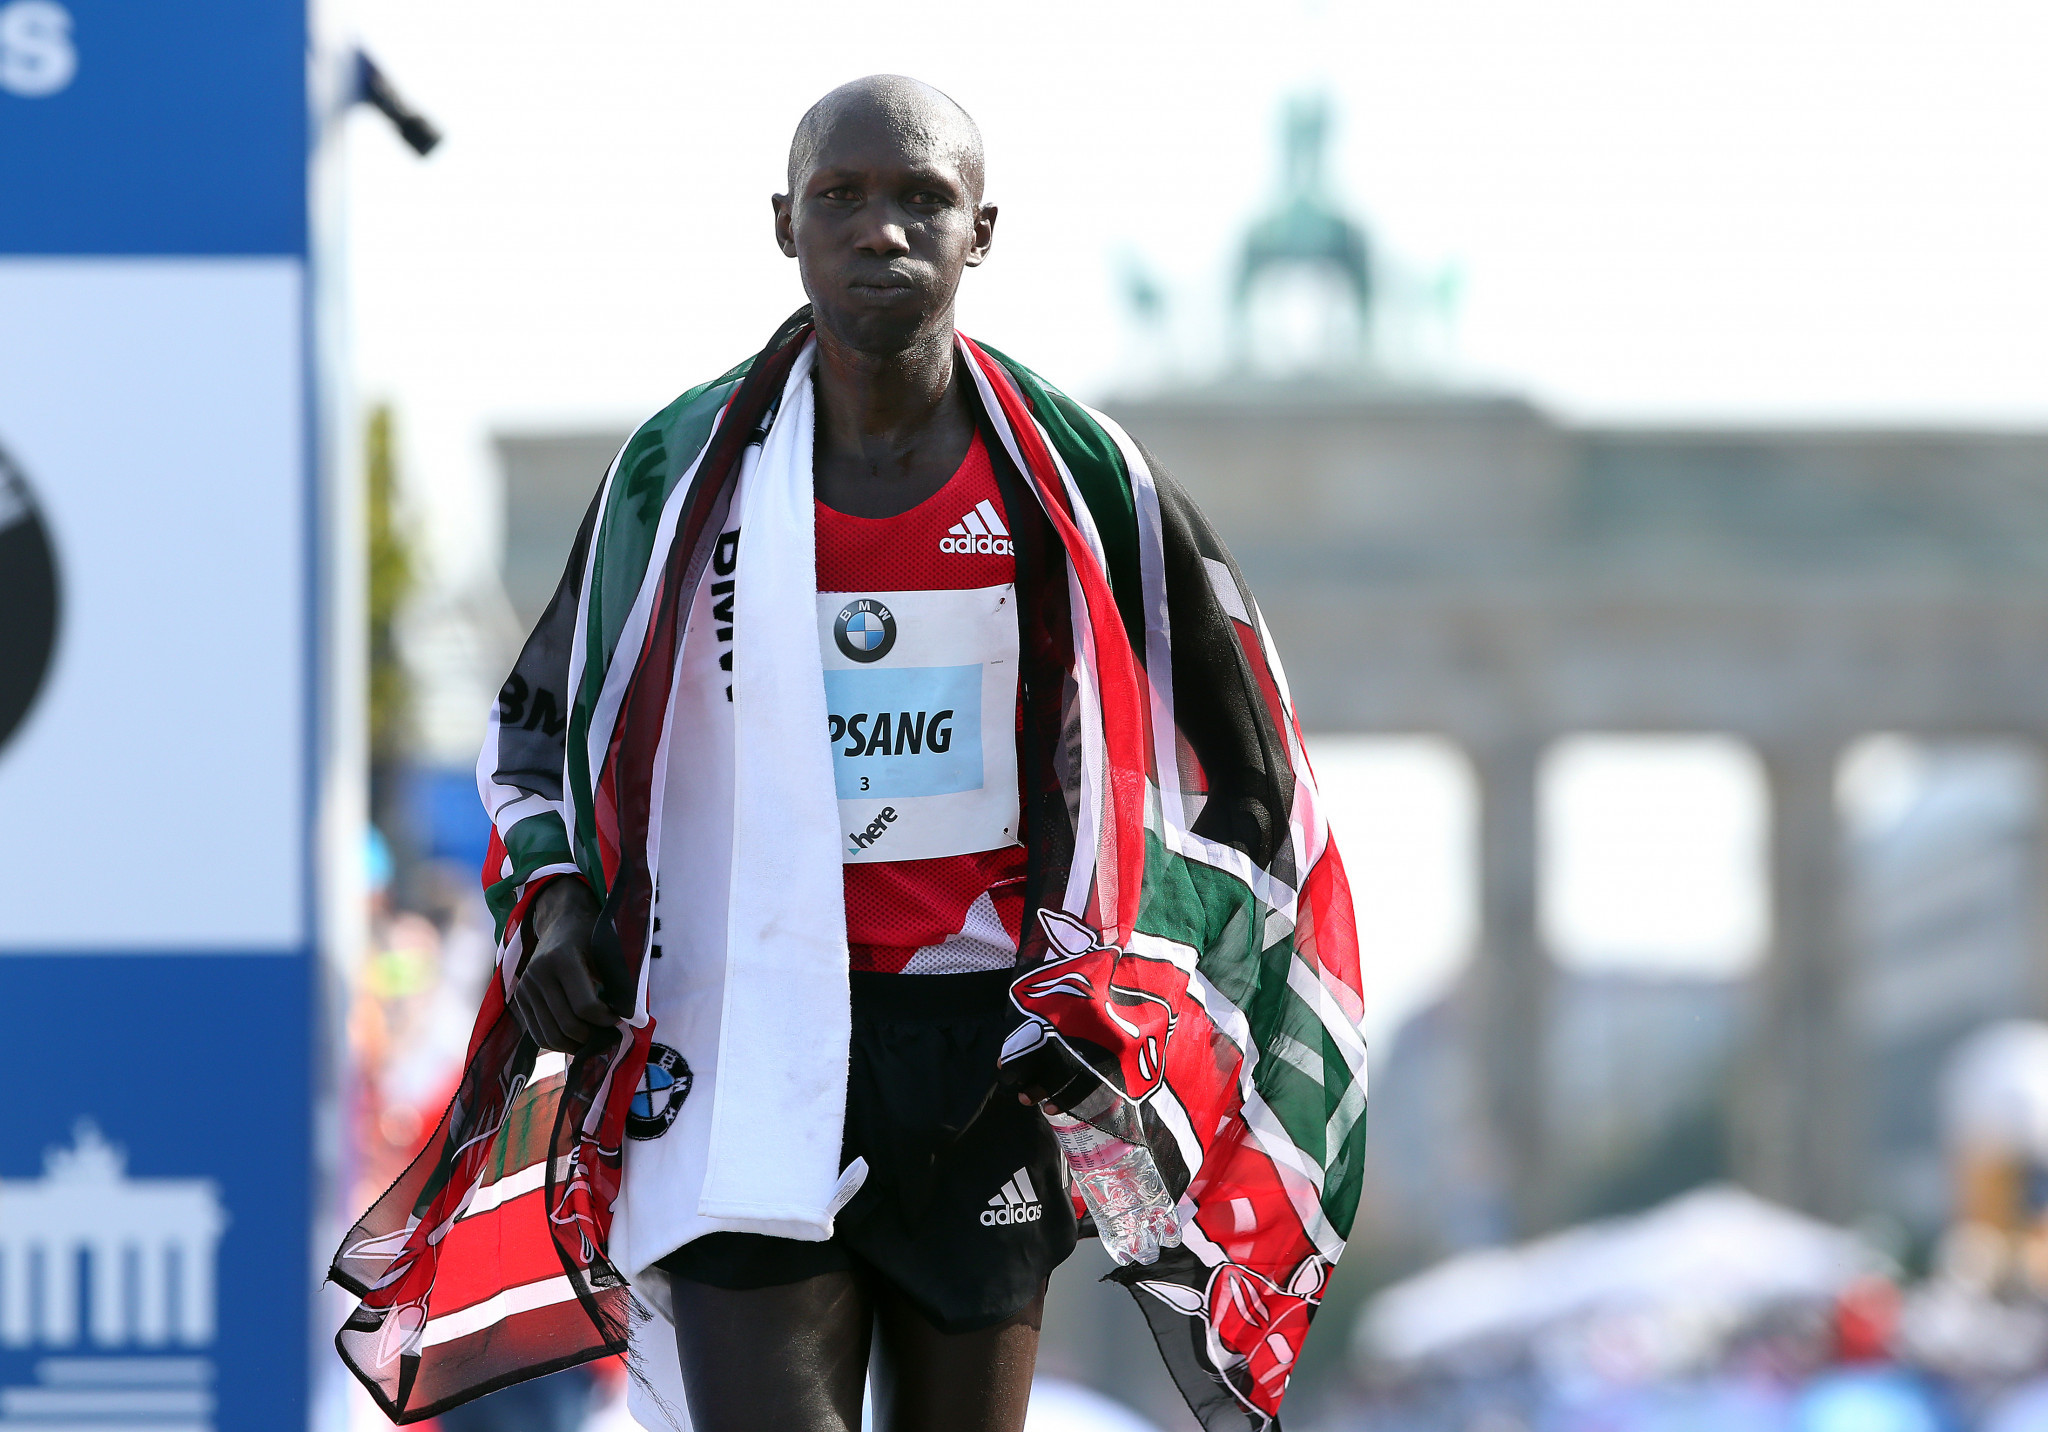 Wilson Kipsang was suspended by the Athletics Integrity Unit in January ©Getty Images